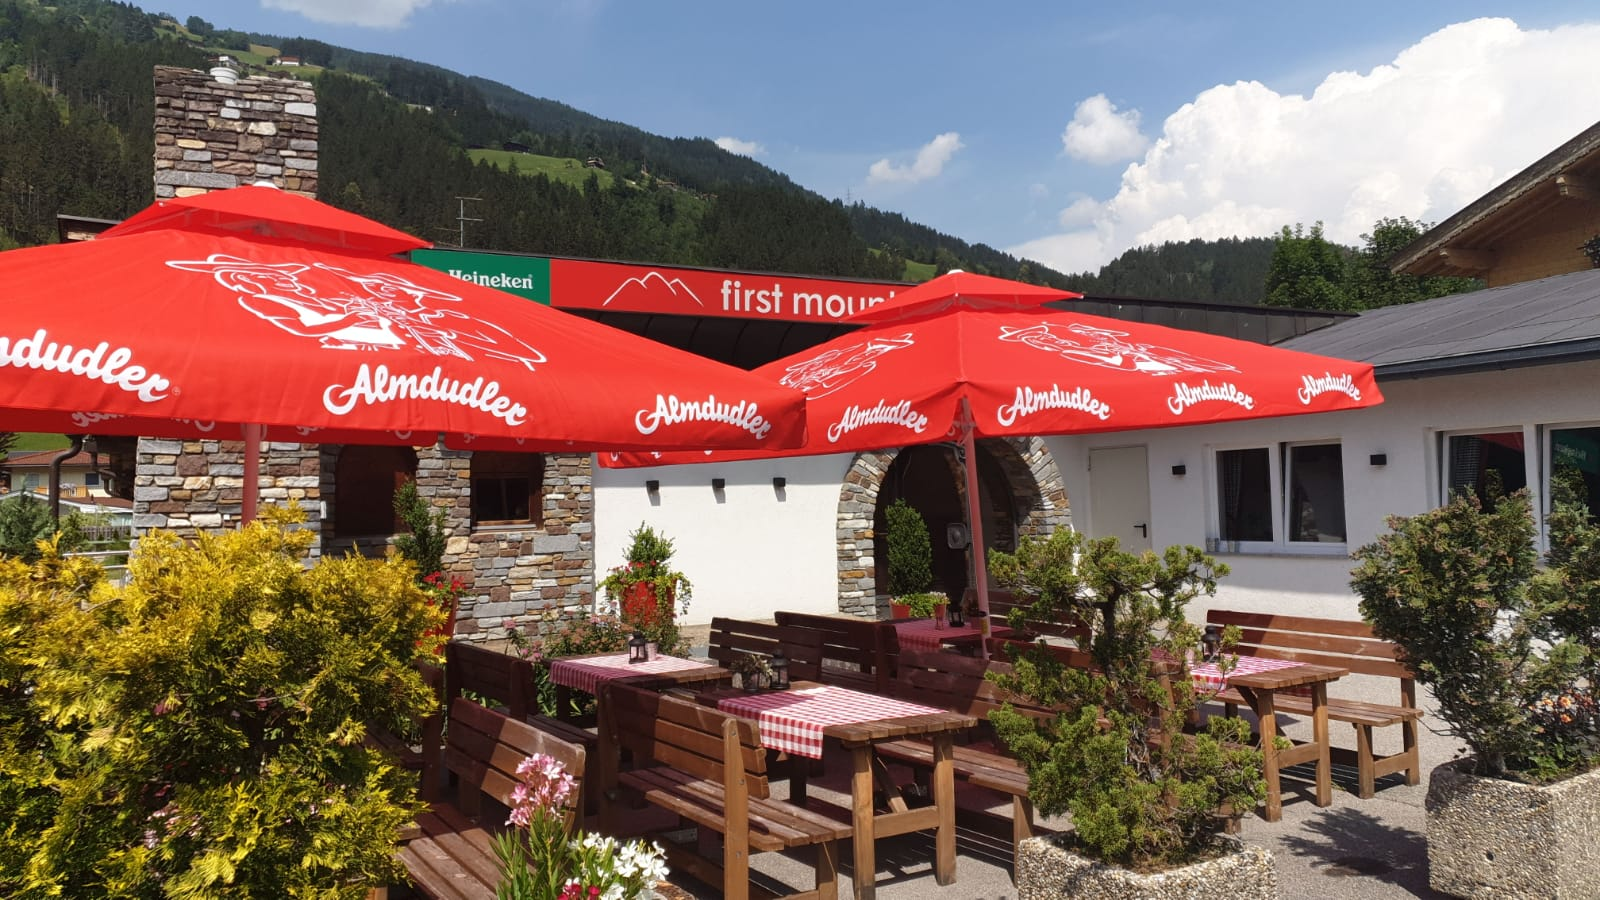 Hotelterrasse des first mountain im Zillertal